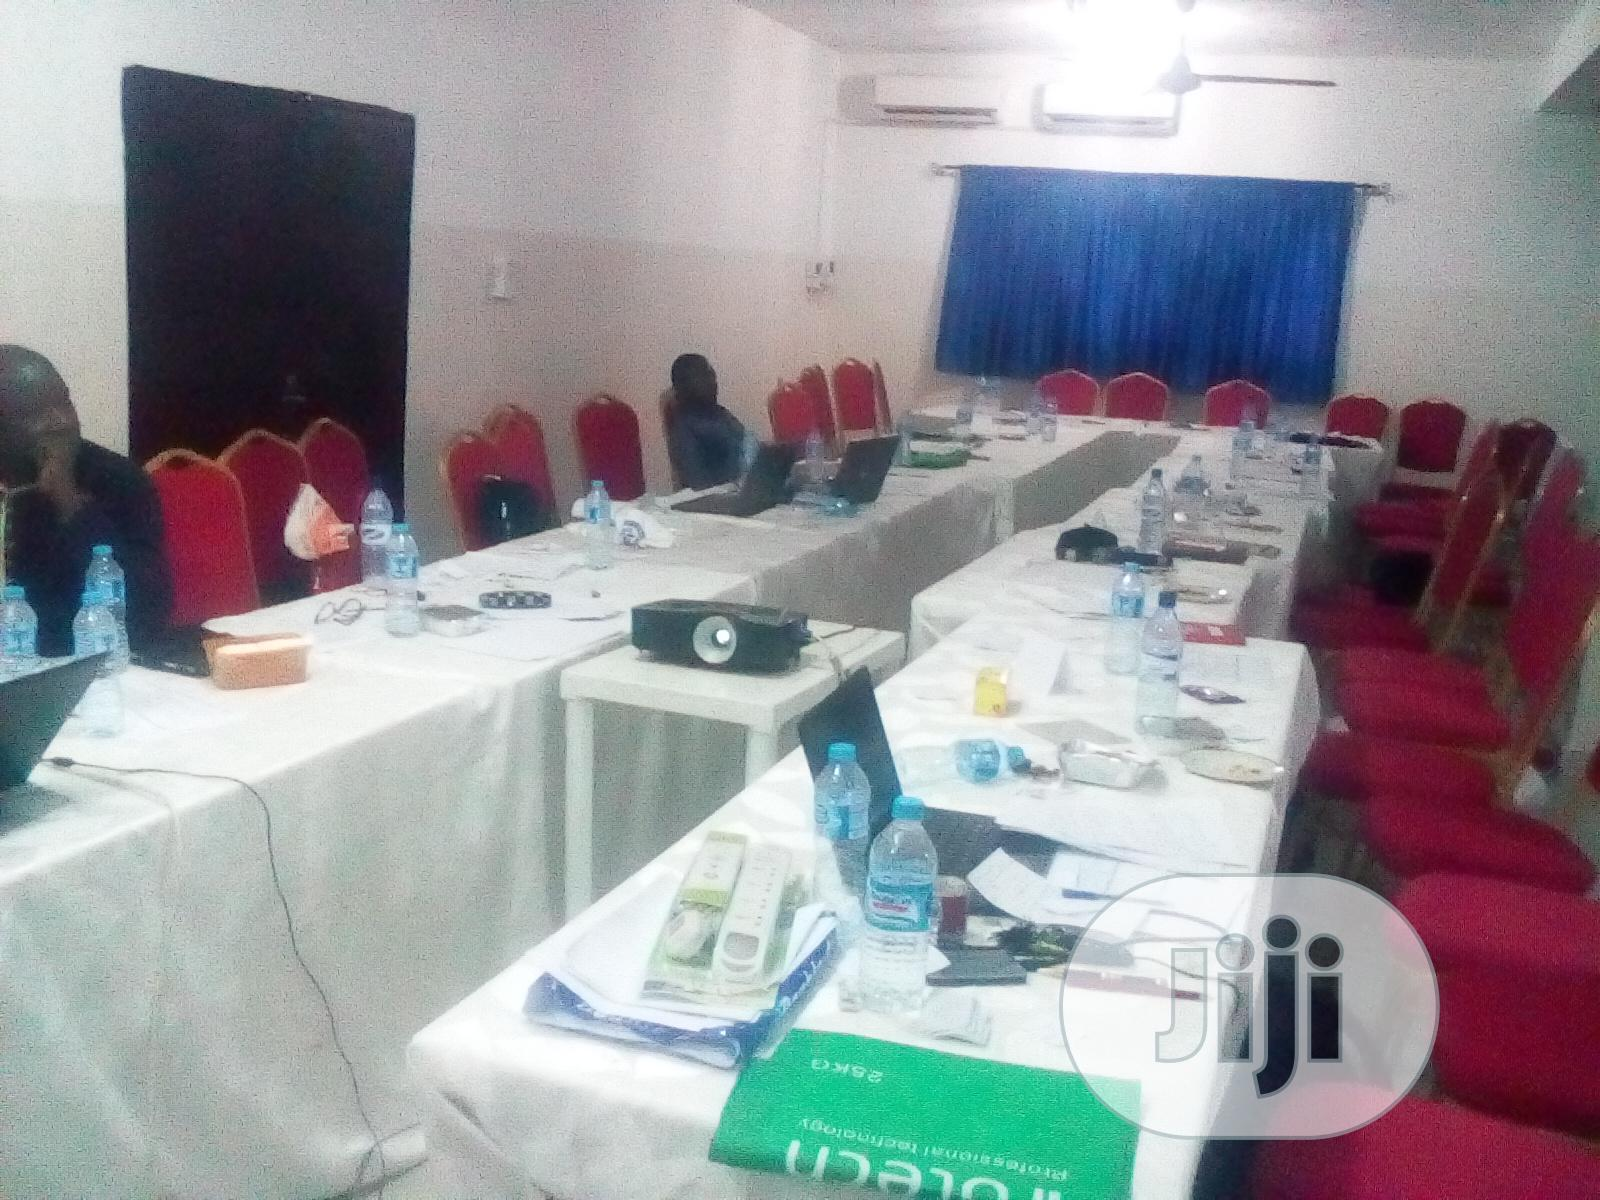 Mini Seminar Hall | Event centres, Venues and Workstations for sale in Ikeja, Lagos State, Nigeria